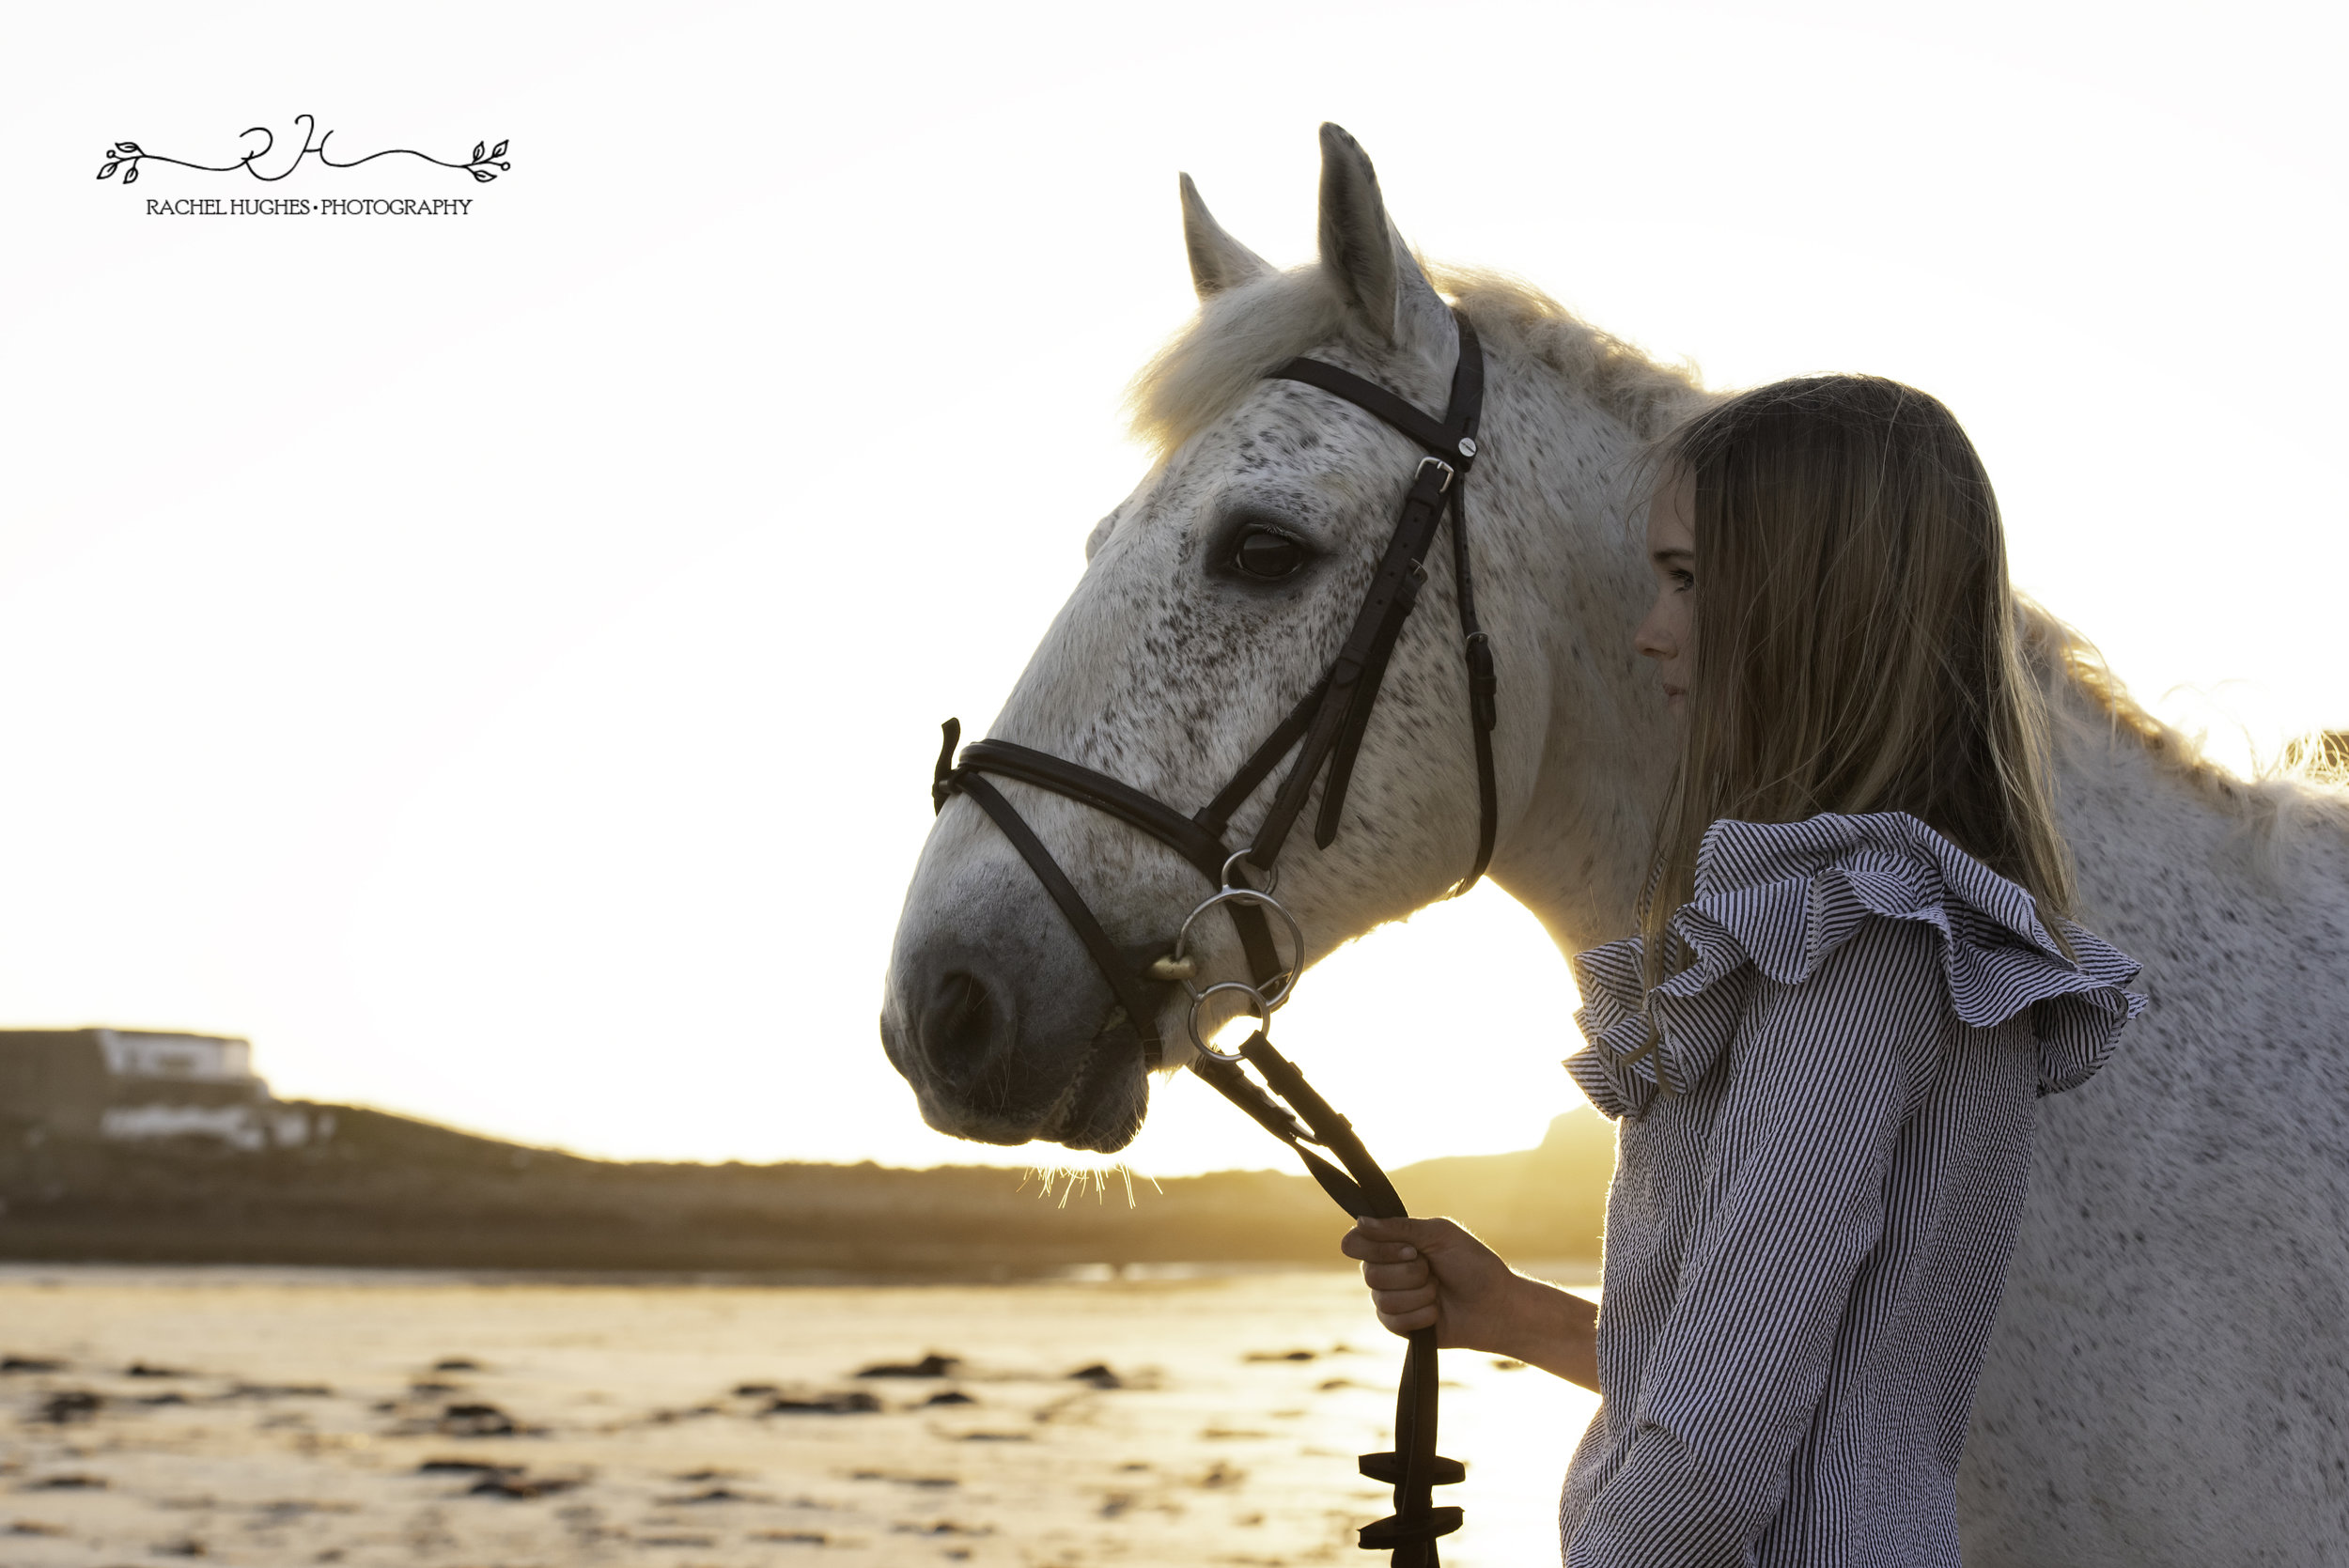 Jersey photographer - evening sunlight on girl and horse